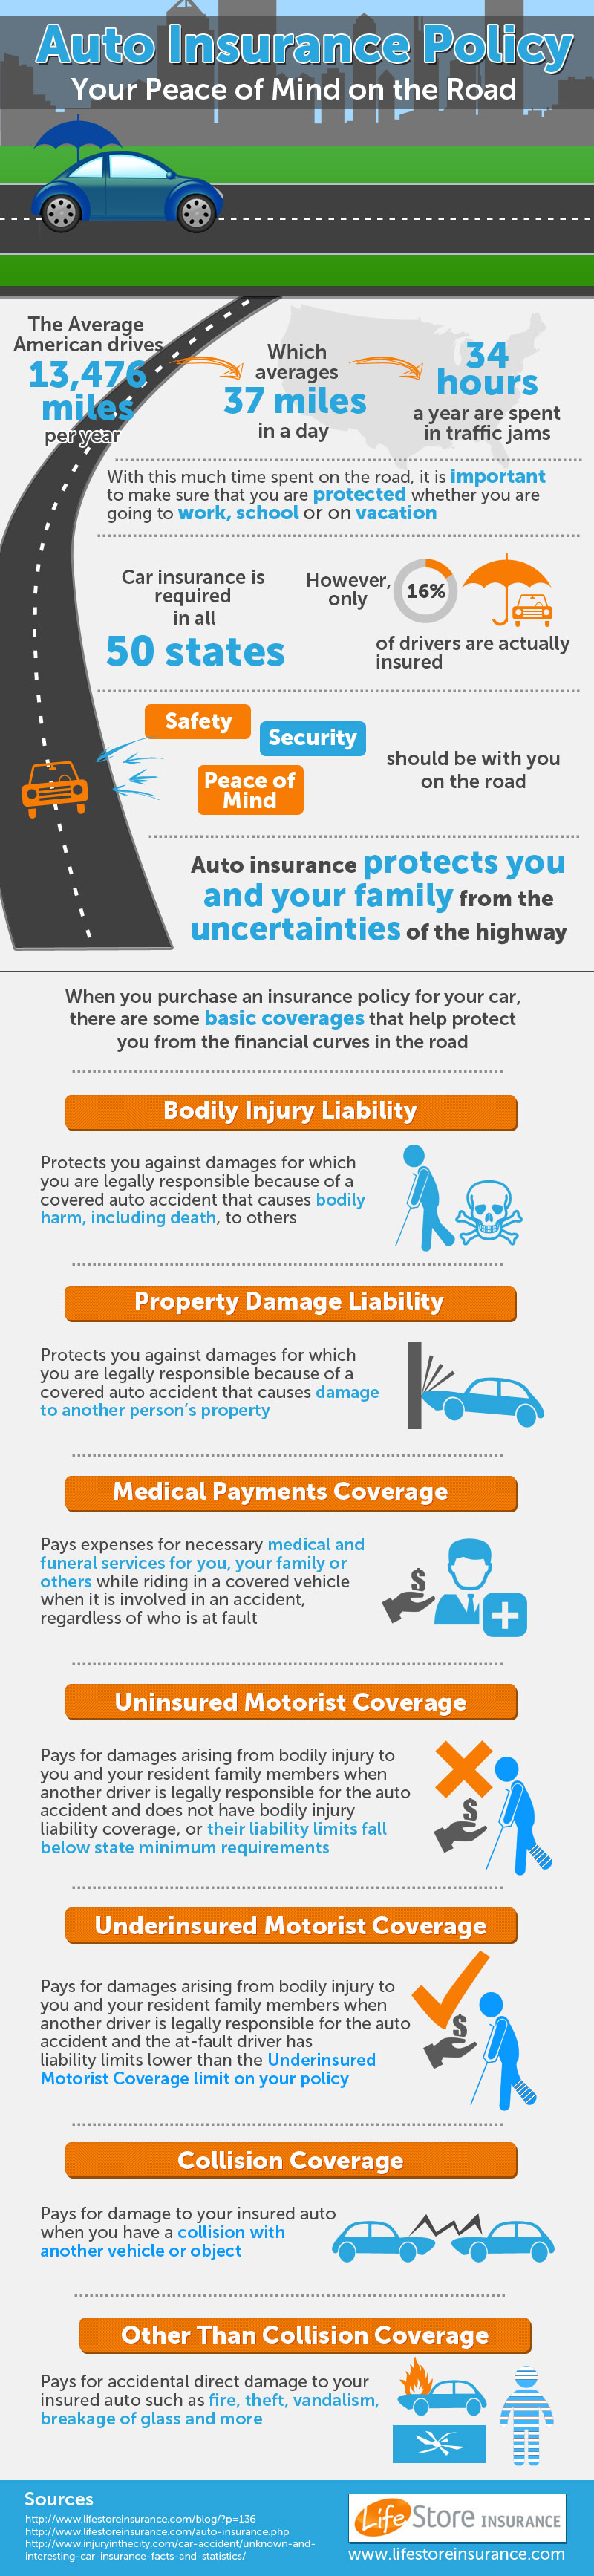 Auto Insurance Policy Your Peace of Mind On The Road